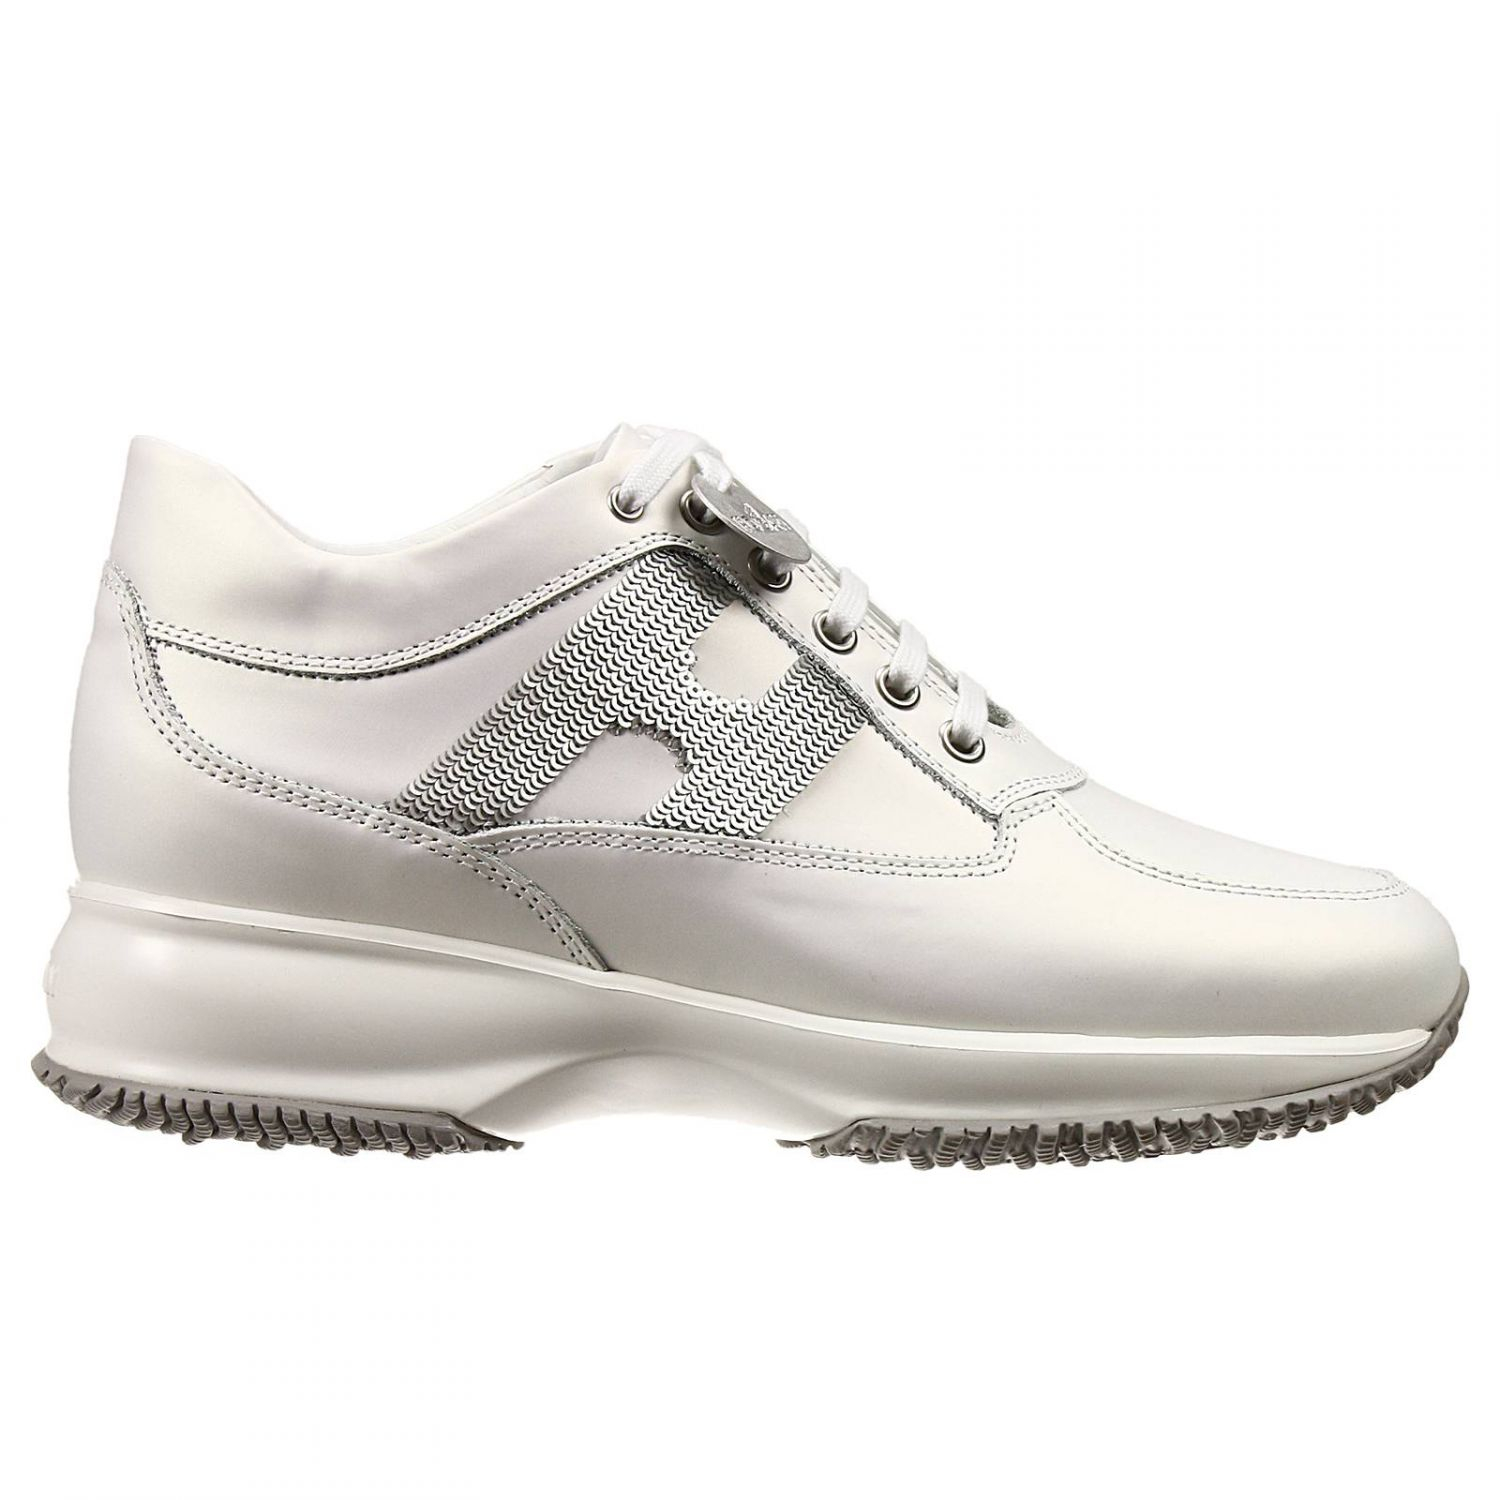 Hogan Shoes Hogan Sneakers Shoes Interactive H Pailettes Leather Gommata In